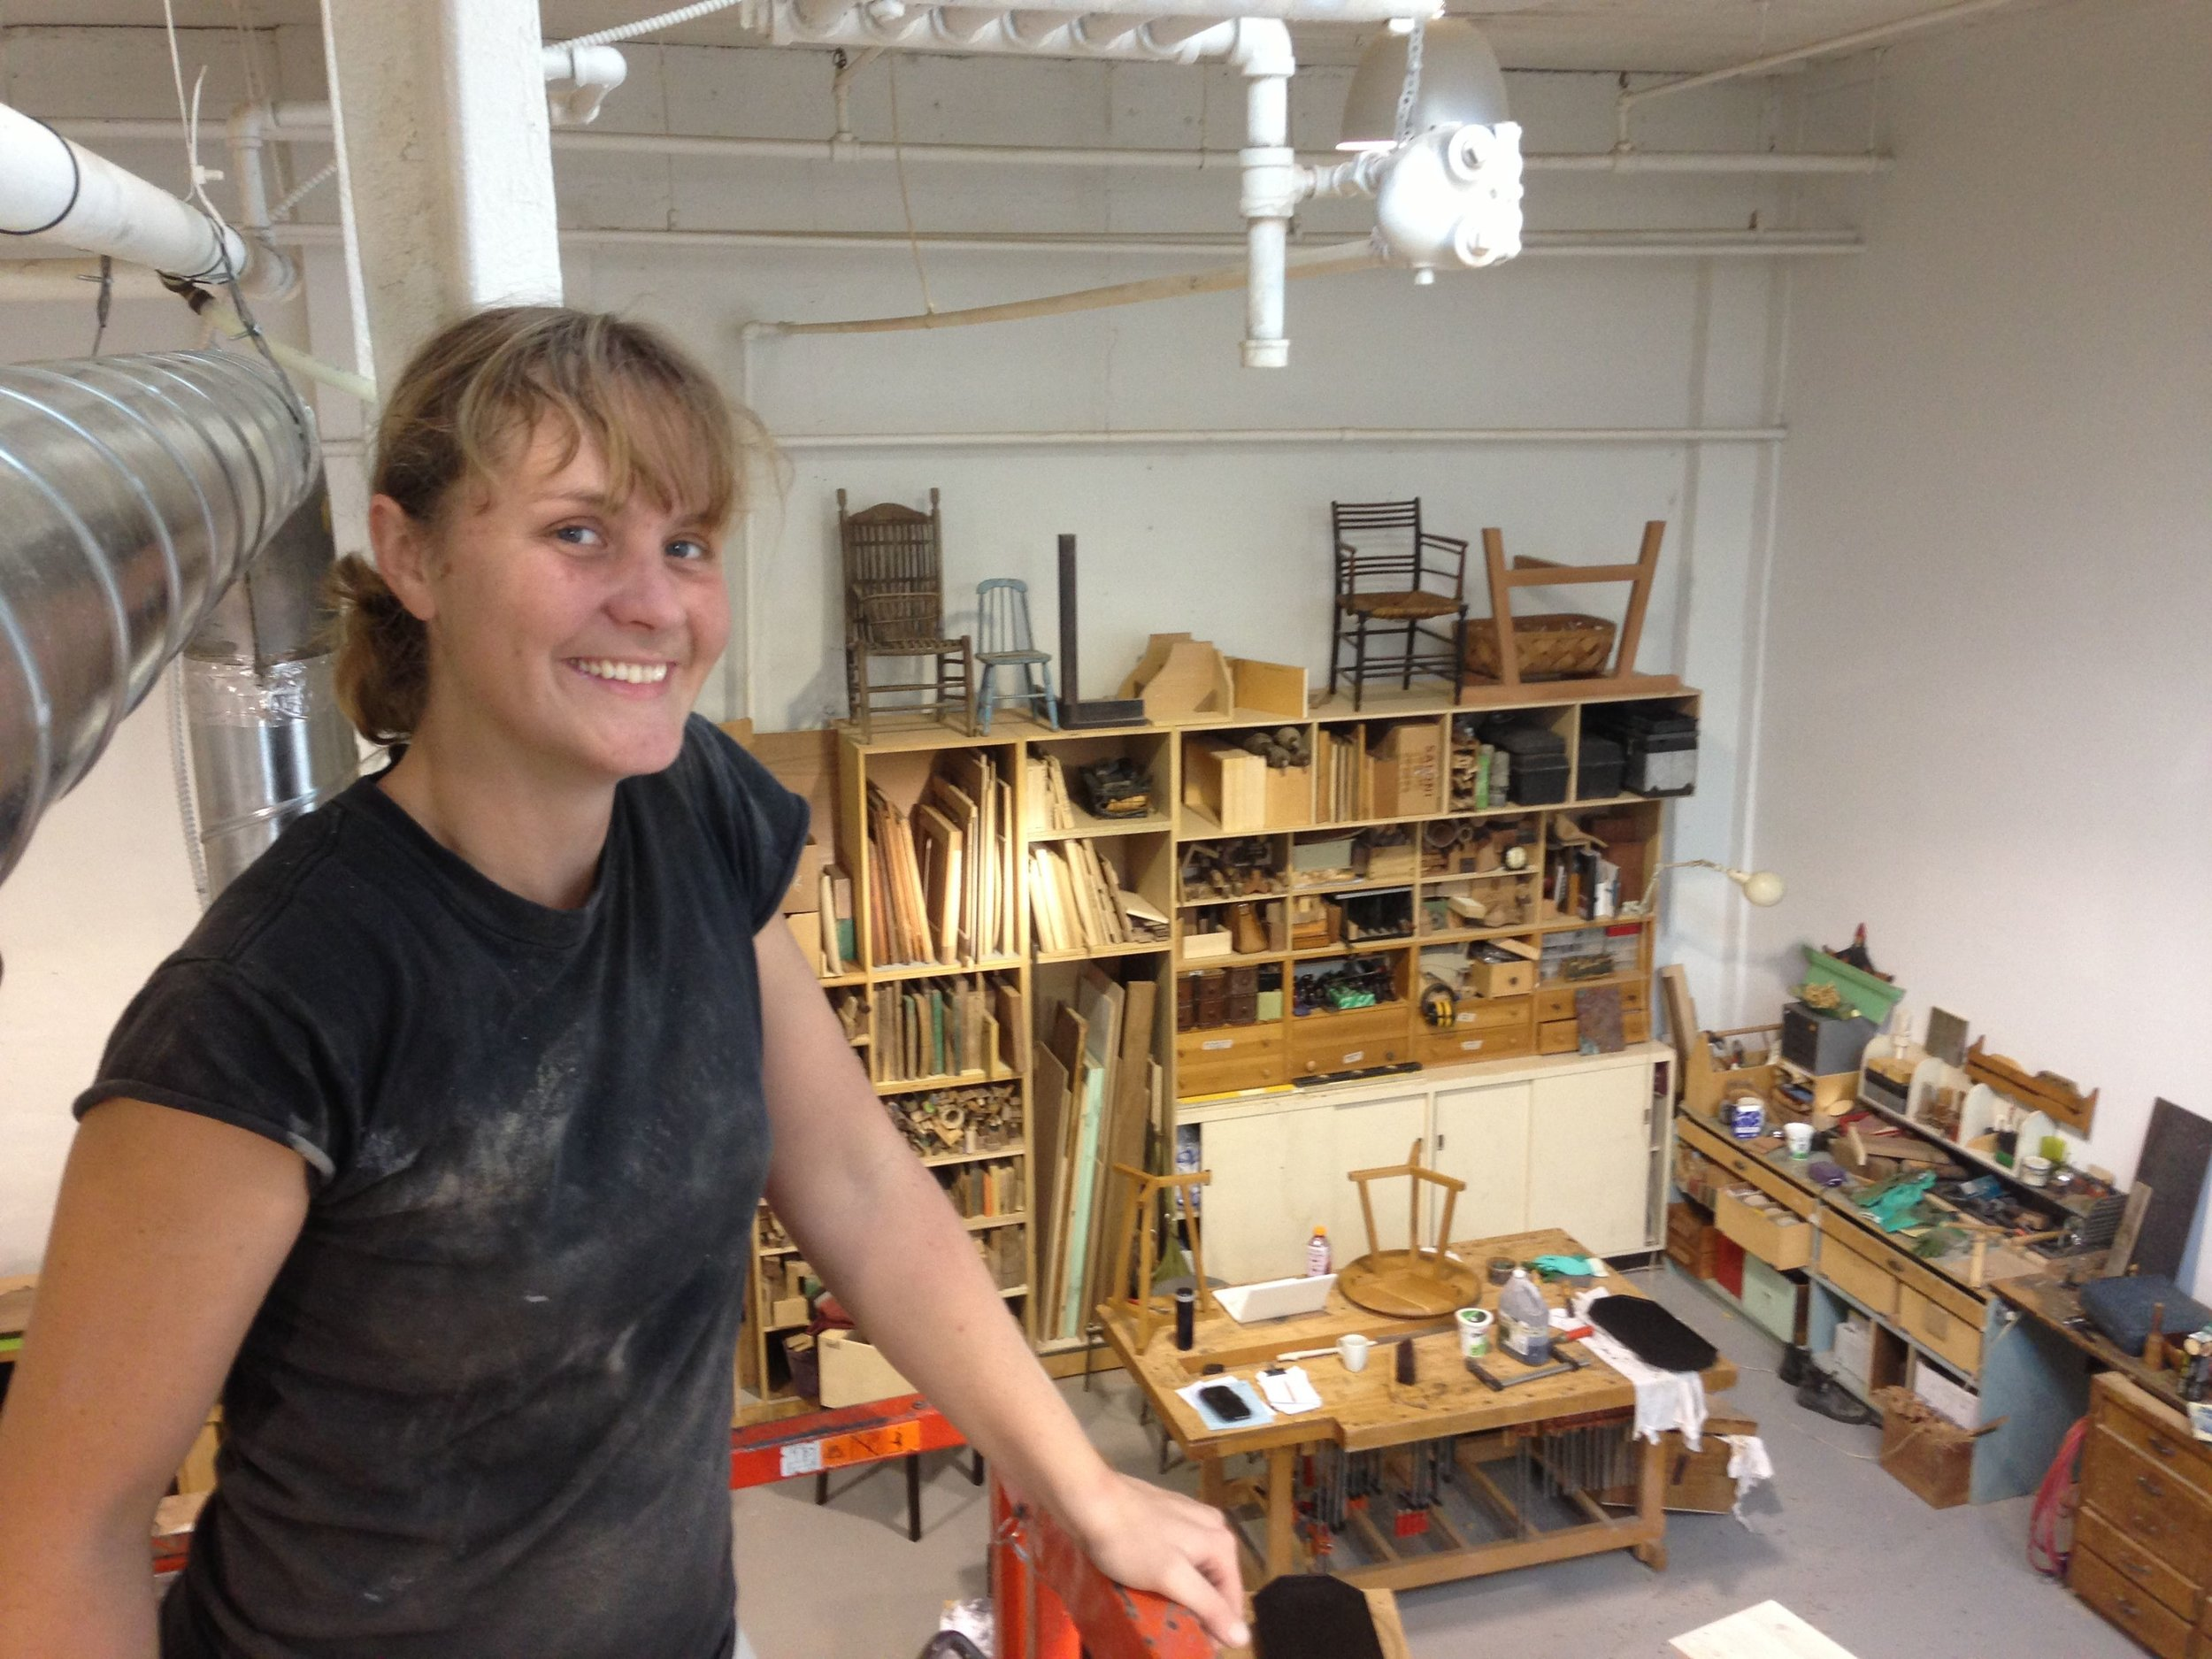 Carey Jernigan   came to woodworking from architecture and fine art. She enjoys the careful process of furniture making and has grown her skills over four years at Heidi Earnshaw Design. As an artist, she's interested in the history of work and the material objects that industry, environments, and social systems leave behind. As a teacher, she loves to share in the simple pleasure of learning to make things by hand.     www.careyjernigan.com